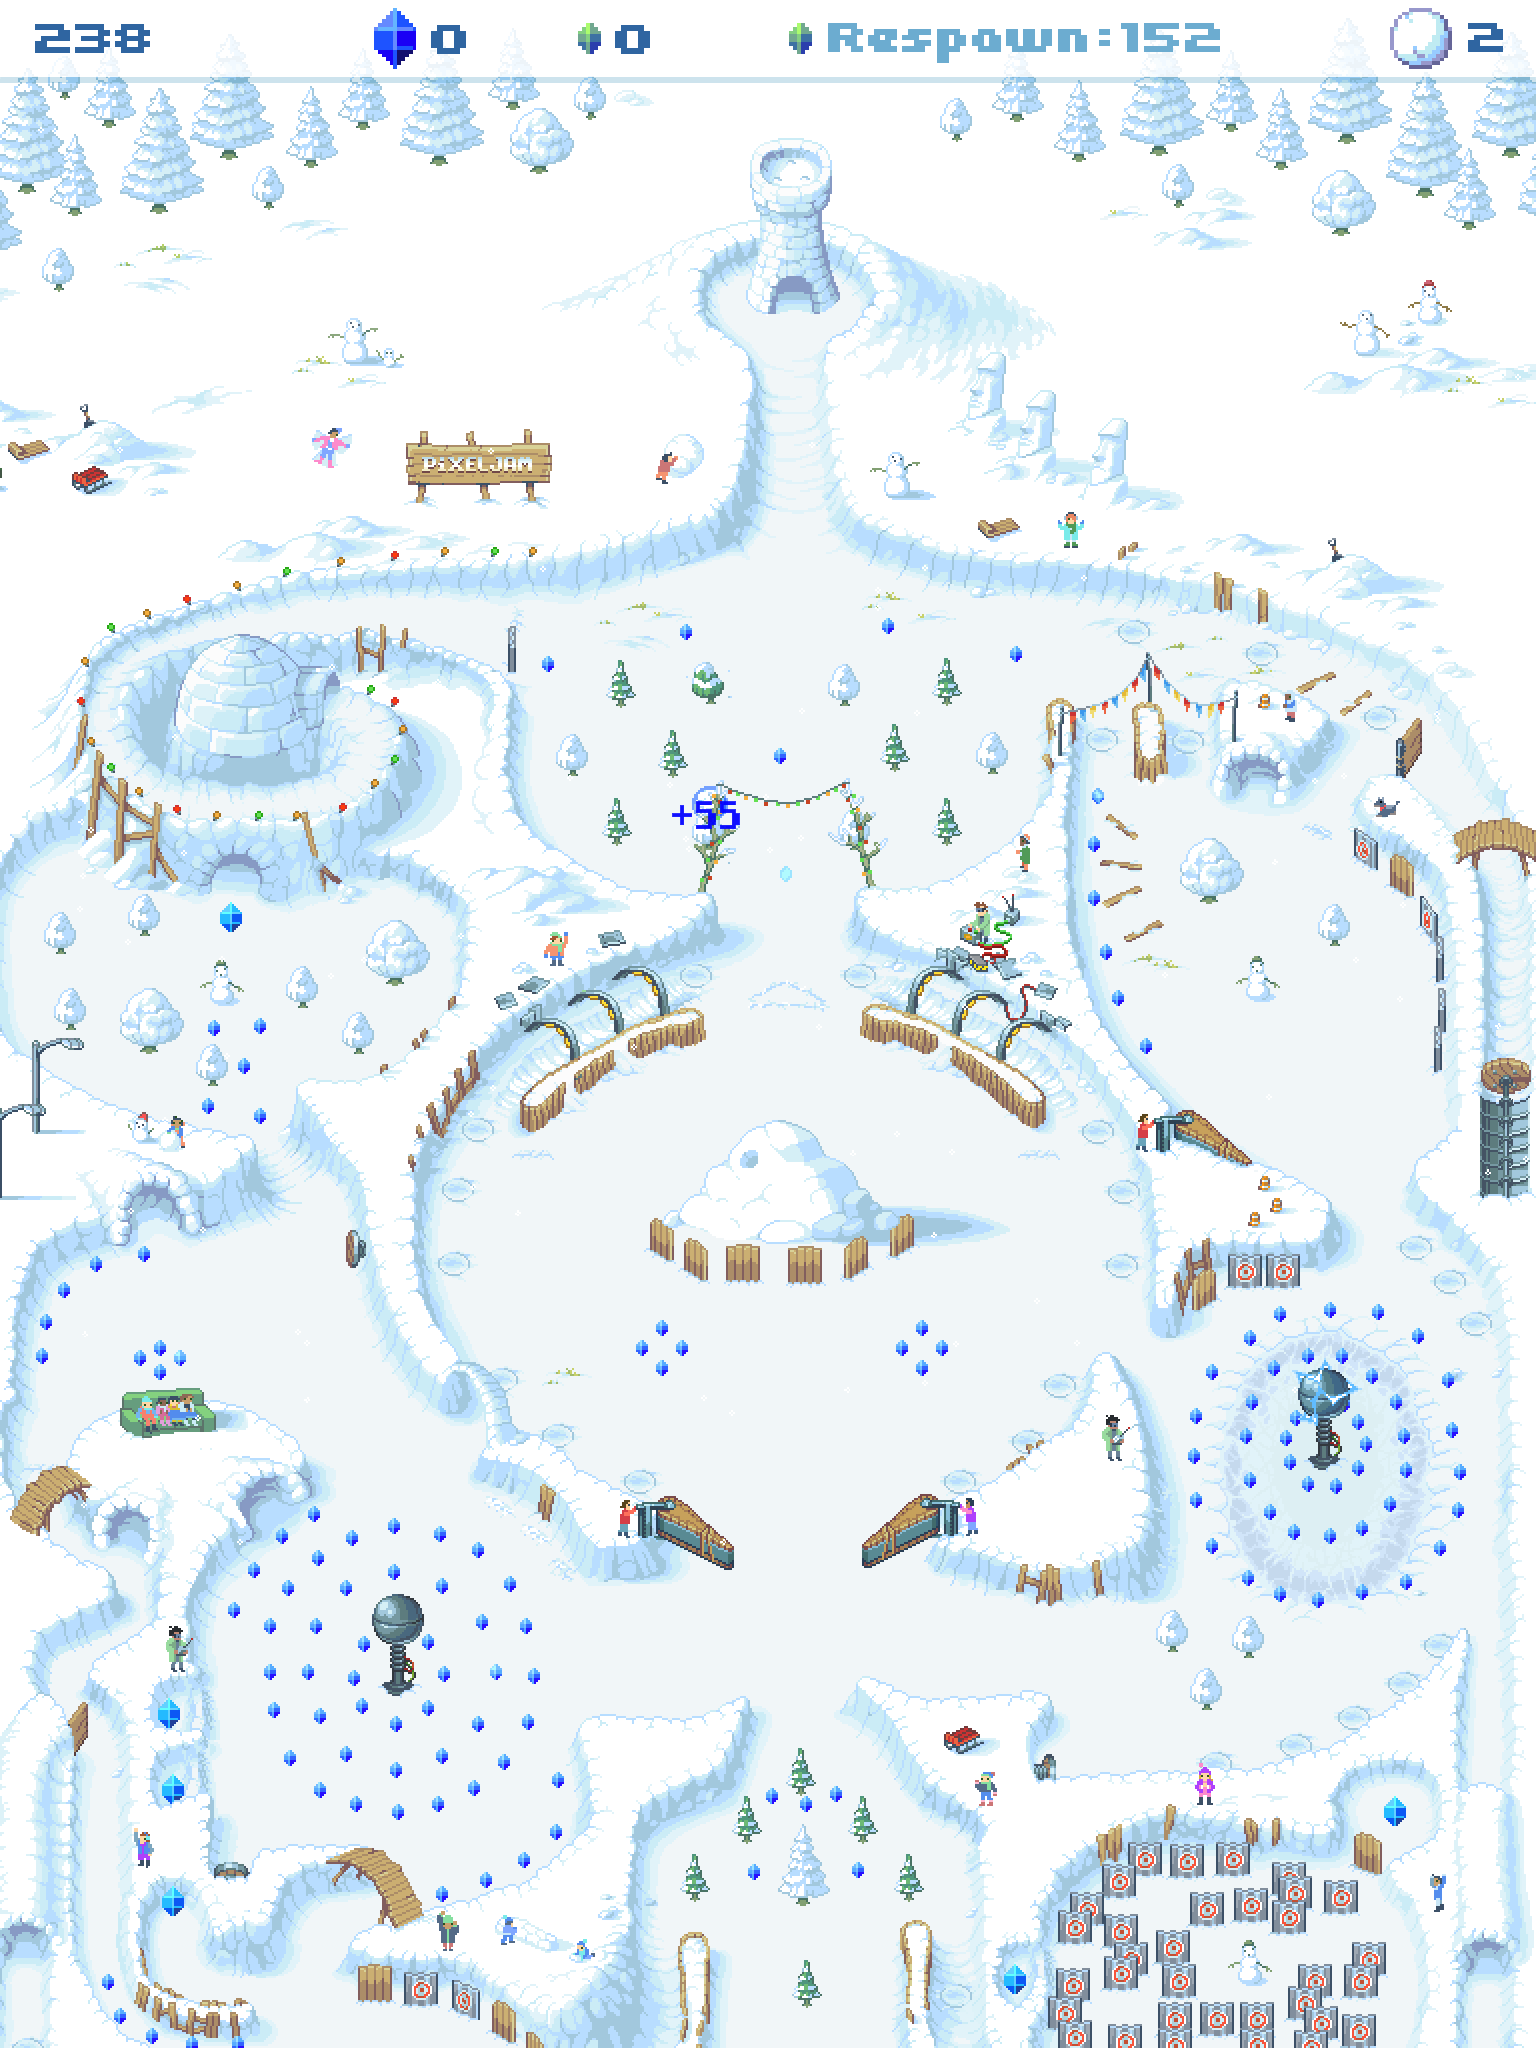 Snowball! review - A snowy pixel-y pinball treat